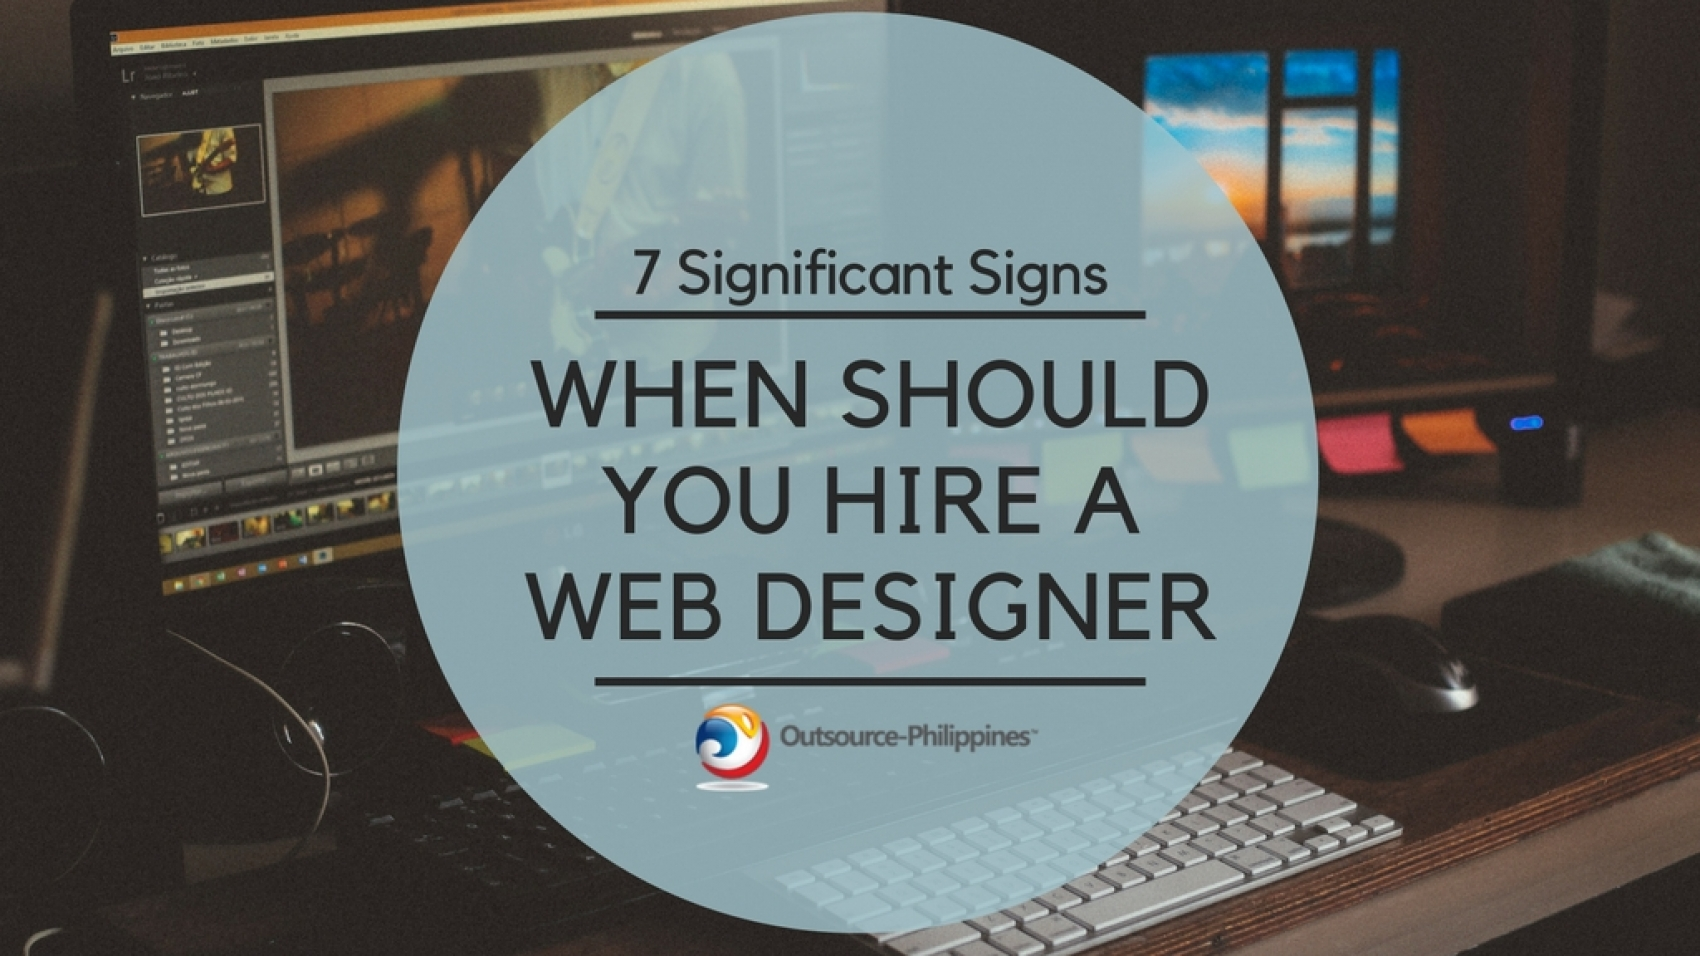 When should you hire a web designer